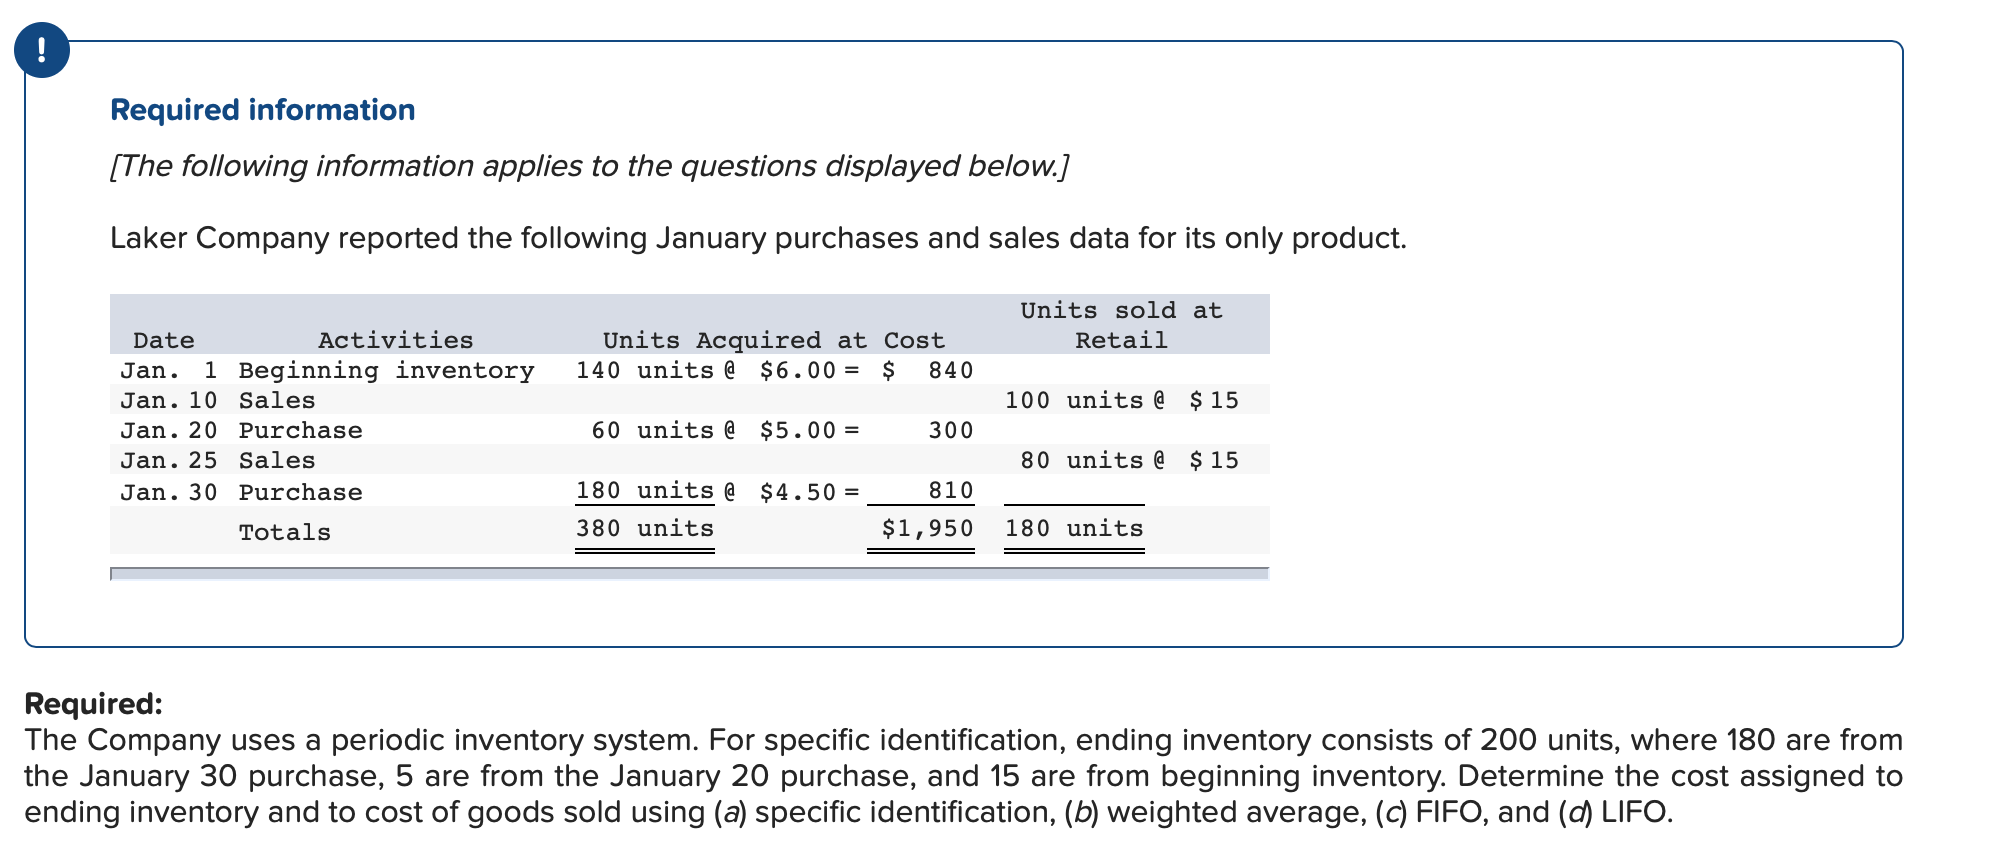 Required information [The following information applies to the questions displayed below.] Laker Company reported the following January purchases and sales data for its only product. Units sold at Activities Units Acquired at Cost 140 units $6.00 = $ Retail Date 1 Beginning inventory 840 Jan 100 units @ $ 15 Jan. 10 Sales 60 units @ $5.00 = 300 Jan. 20 Purchase 80 units @ $ 15 Jan. 25 Sales 180 units @ 810 $4.50 Jan. 30 Purchase 380 units $1,950 180 units Totals Required: The Company uses a periodic inventory system. For specific identification, ending inventory consists of 200 units, where 180 are from the January 30 purchase, 5 are from the January 20 purchase, and 15 are from beginning inventory. Determine the cost assigned to ending inventory and to cost of goods sold using (a) specific identification, (b) weighted average, (c) FIFO, and (d) LIFO